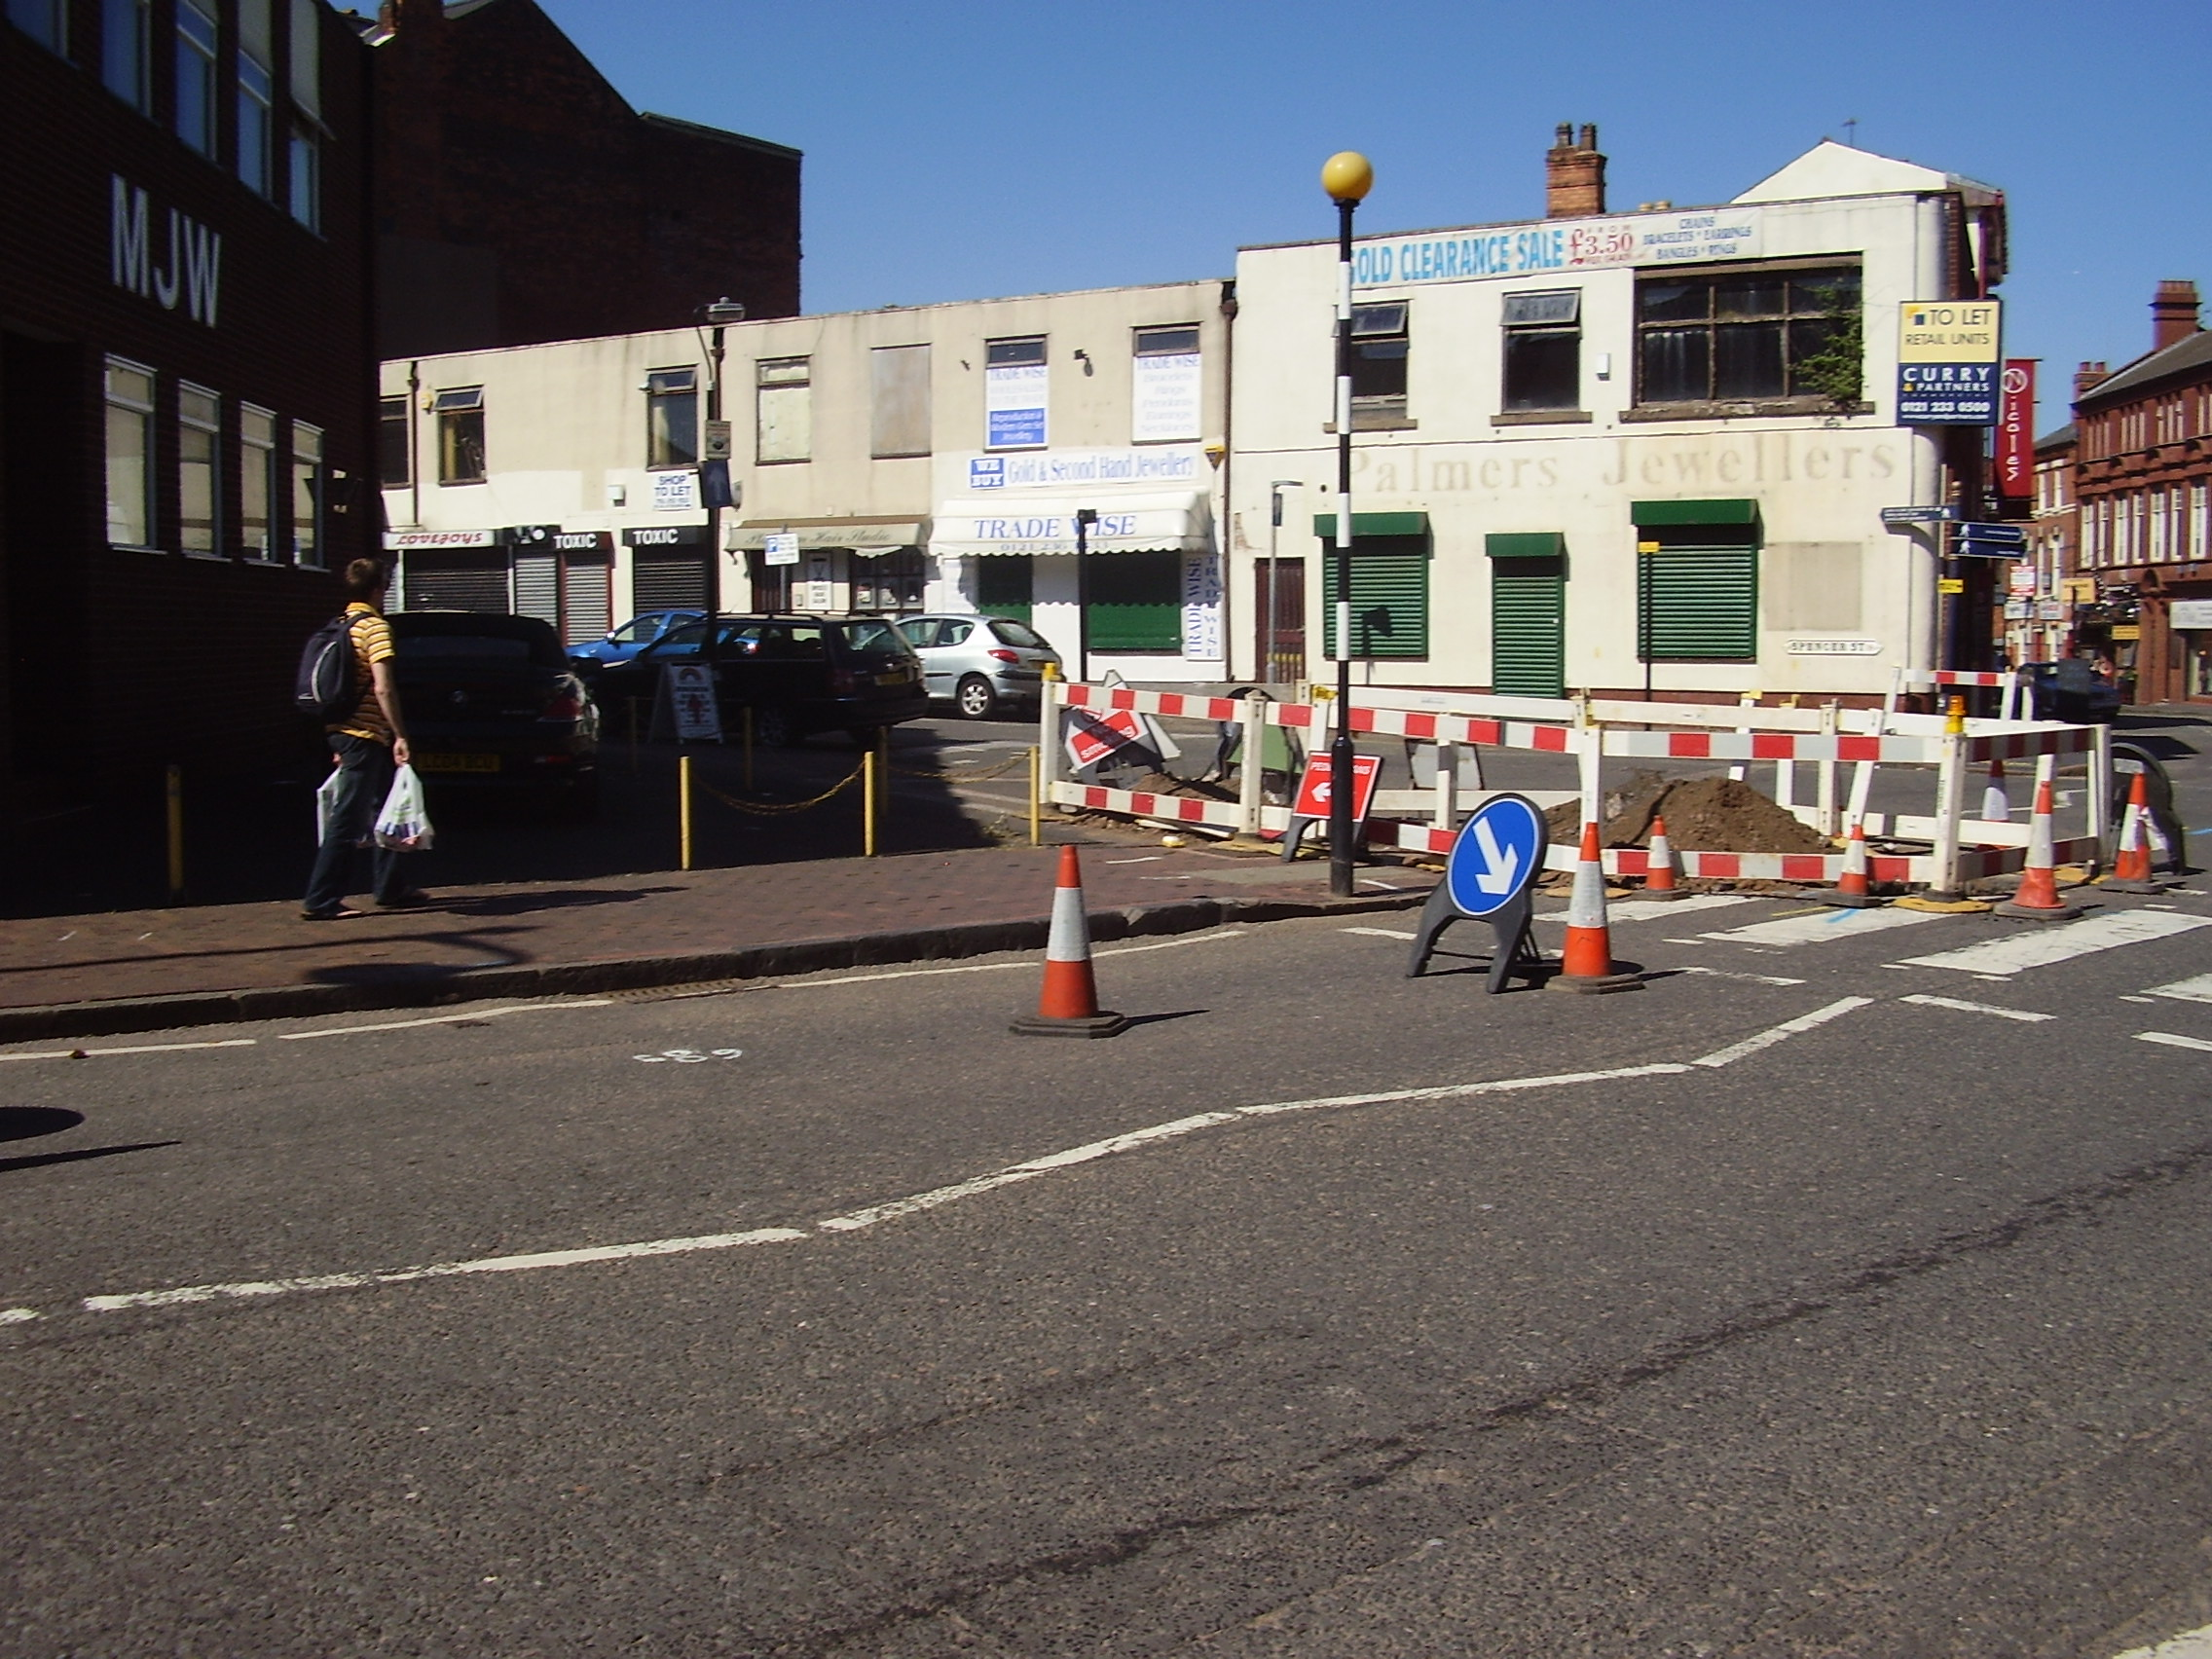 2008 Street view of the Jewellery Quarter Birmingham 1